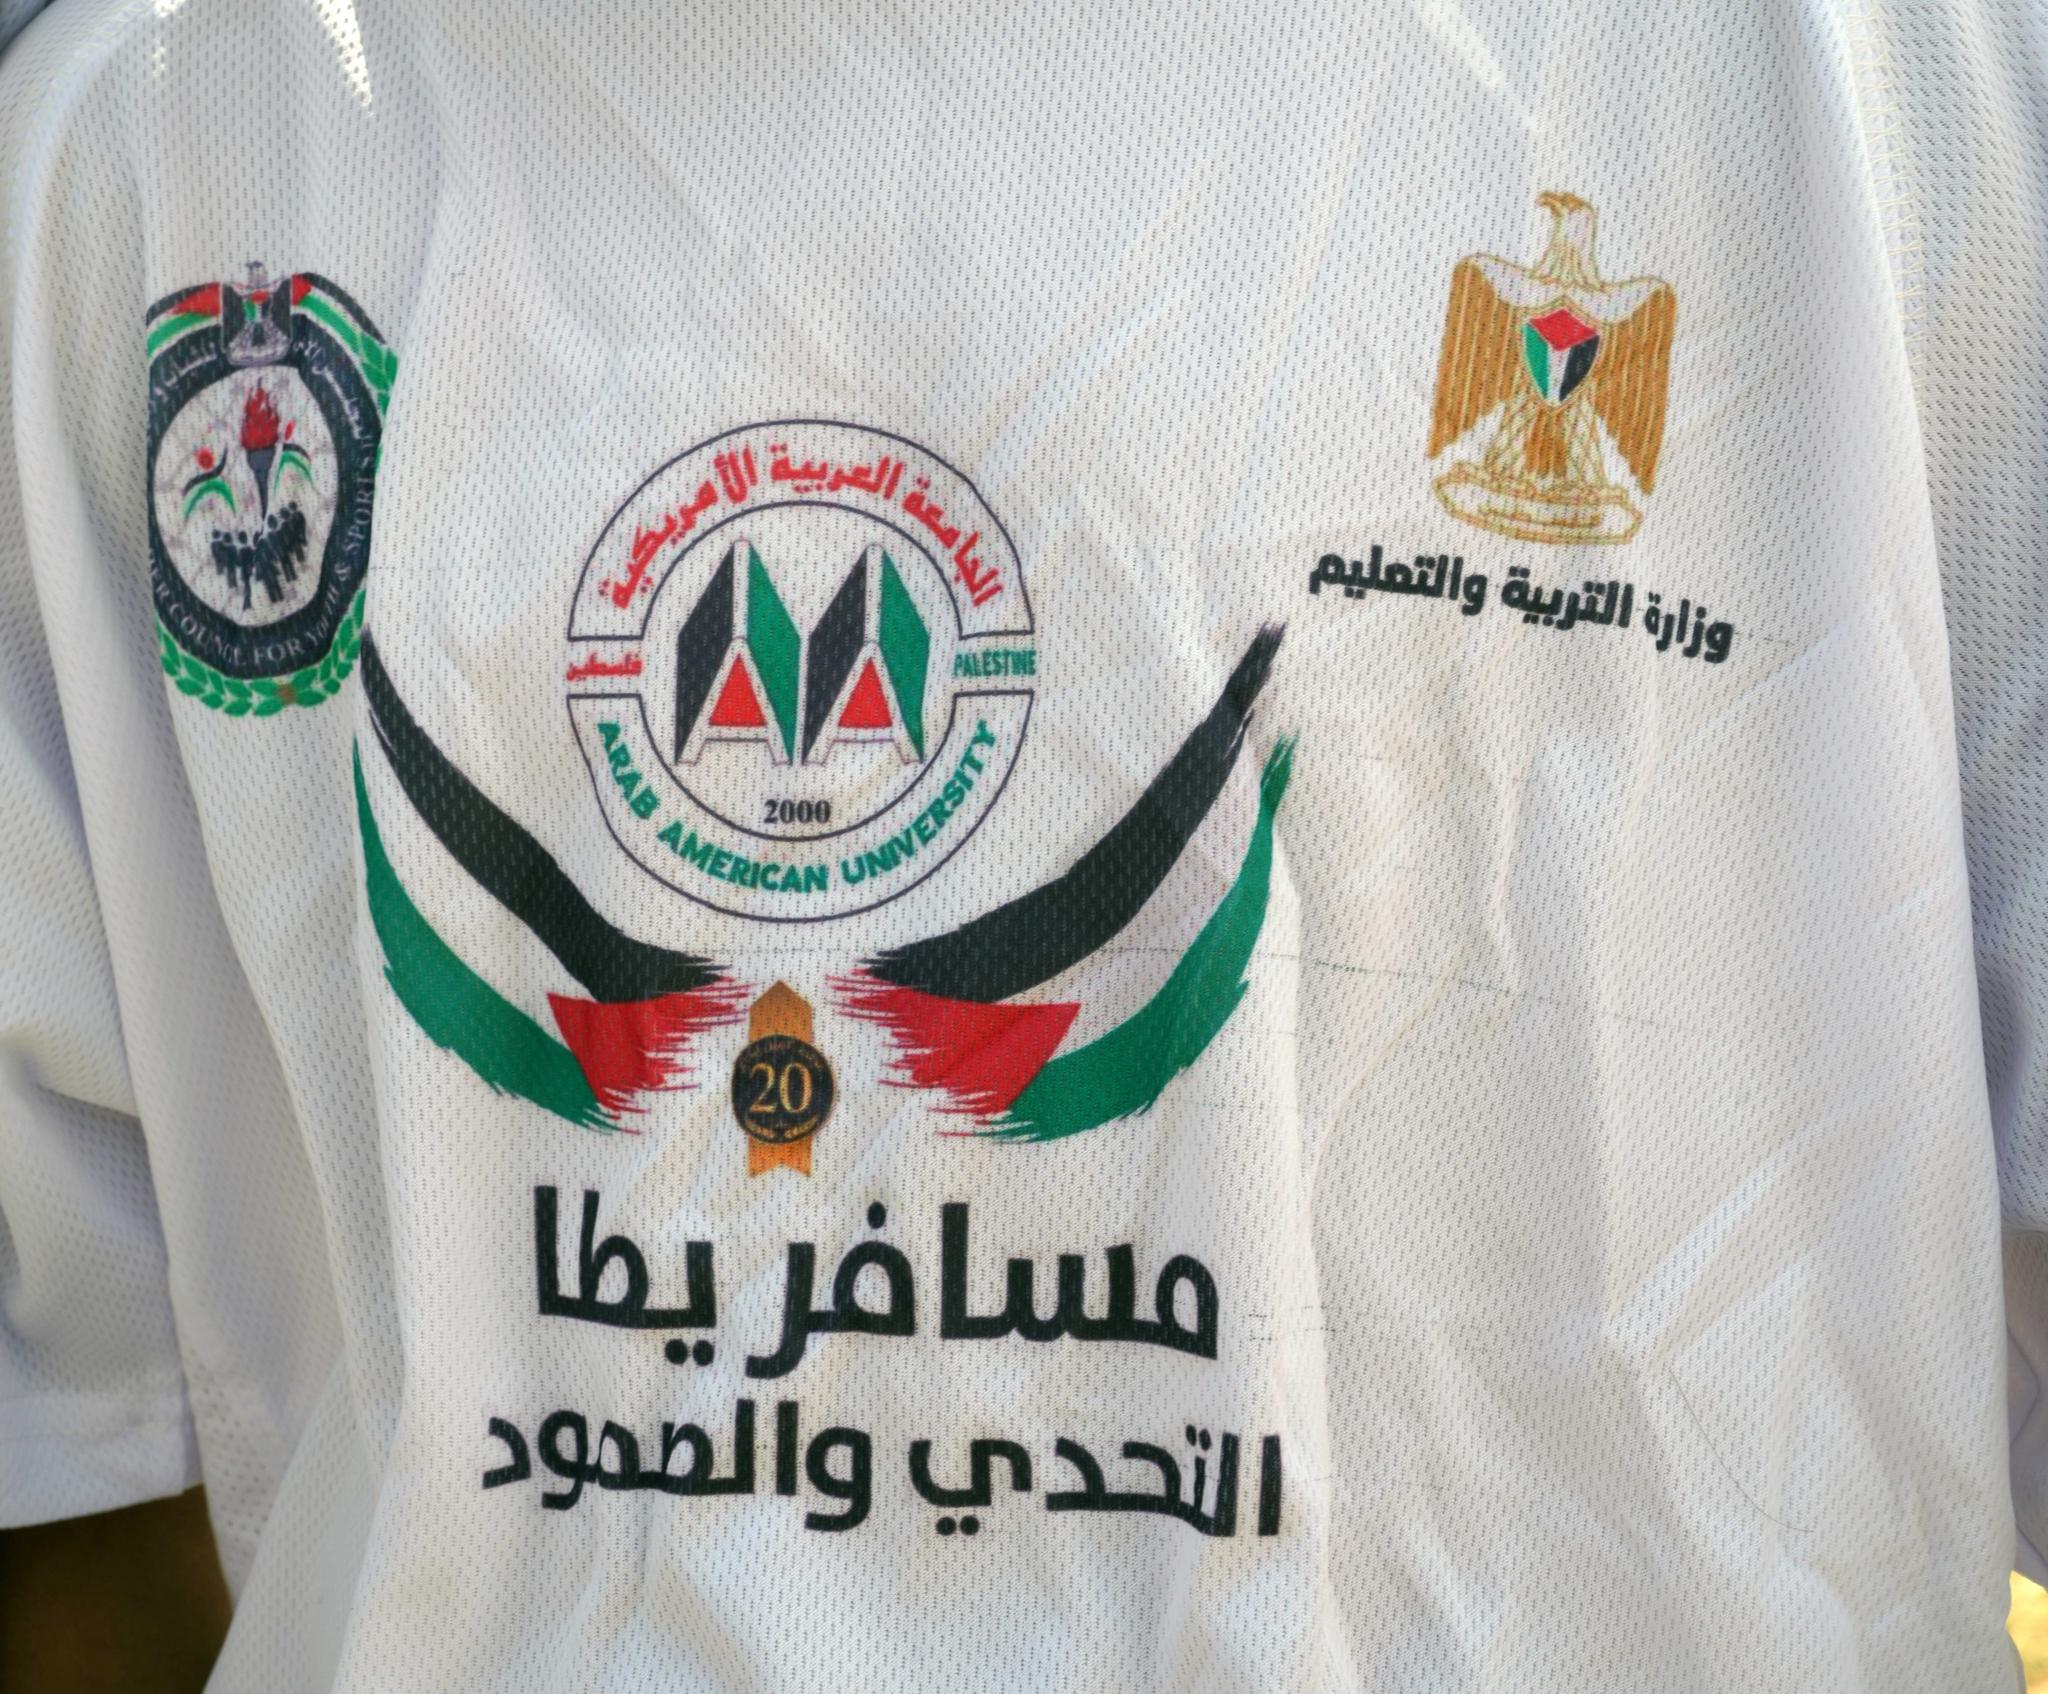 """On its 20th Anniversary, AAUP and under a Joint Partnership with the Ministry of Education and the Supreme Council for Youth and Sports Organizes a Marathon """"To Support Massafer Yatta Case"""""""